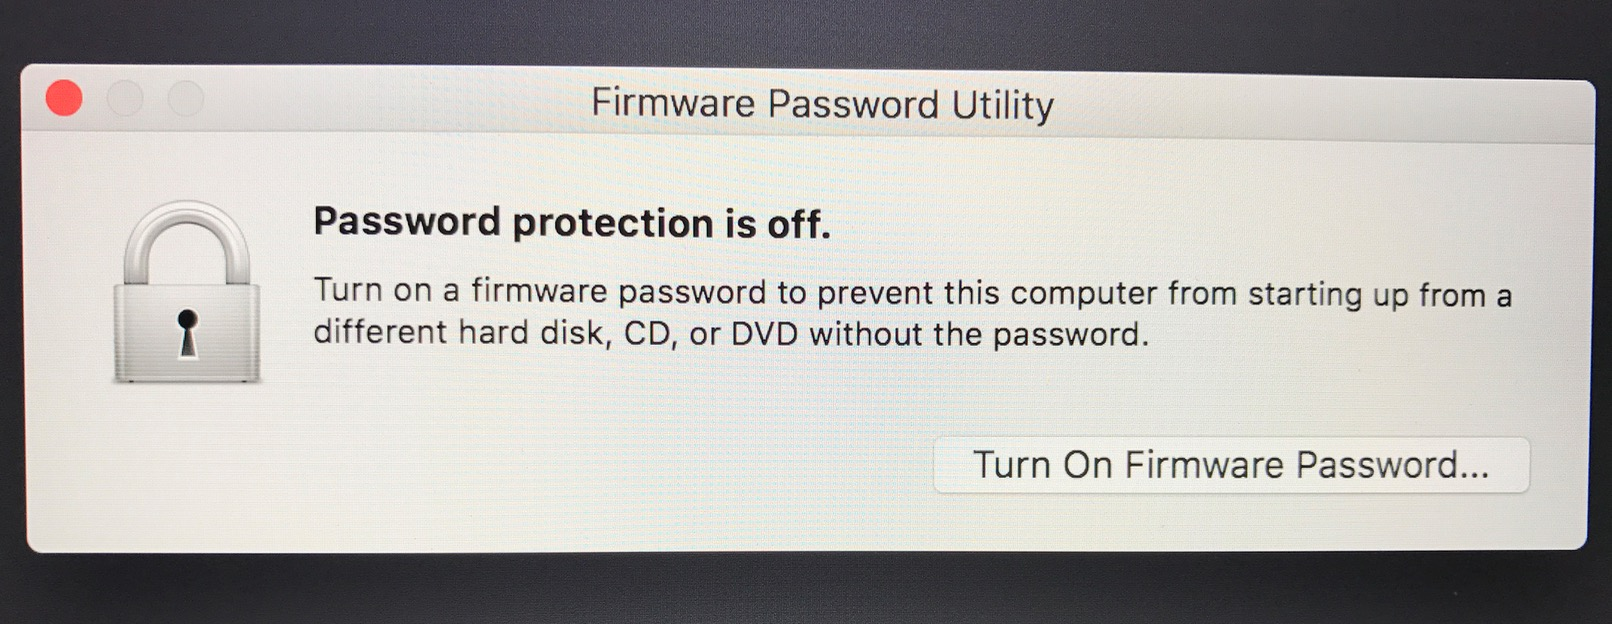 Turn On Firmware Password in the macOS Firmware Password Utility